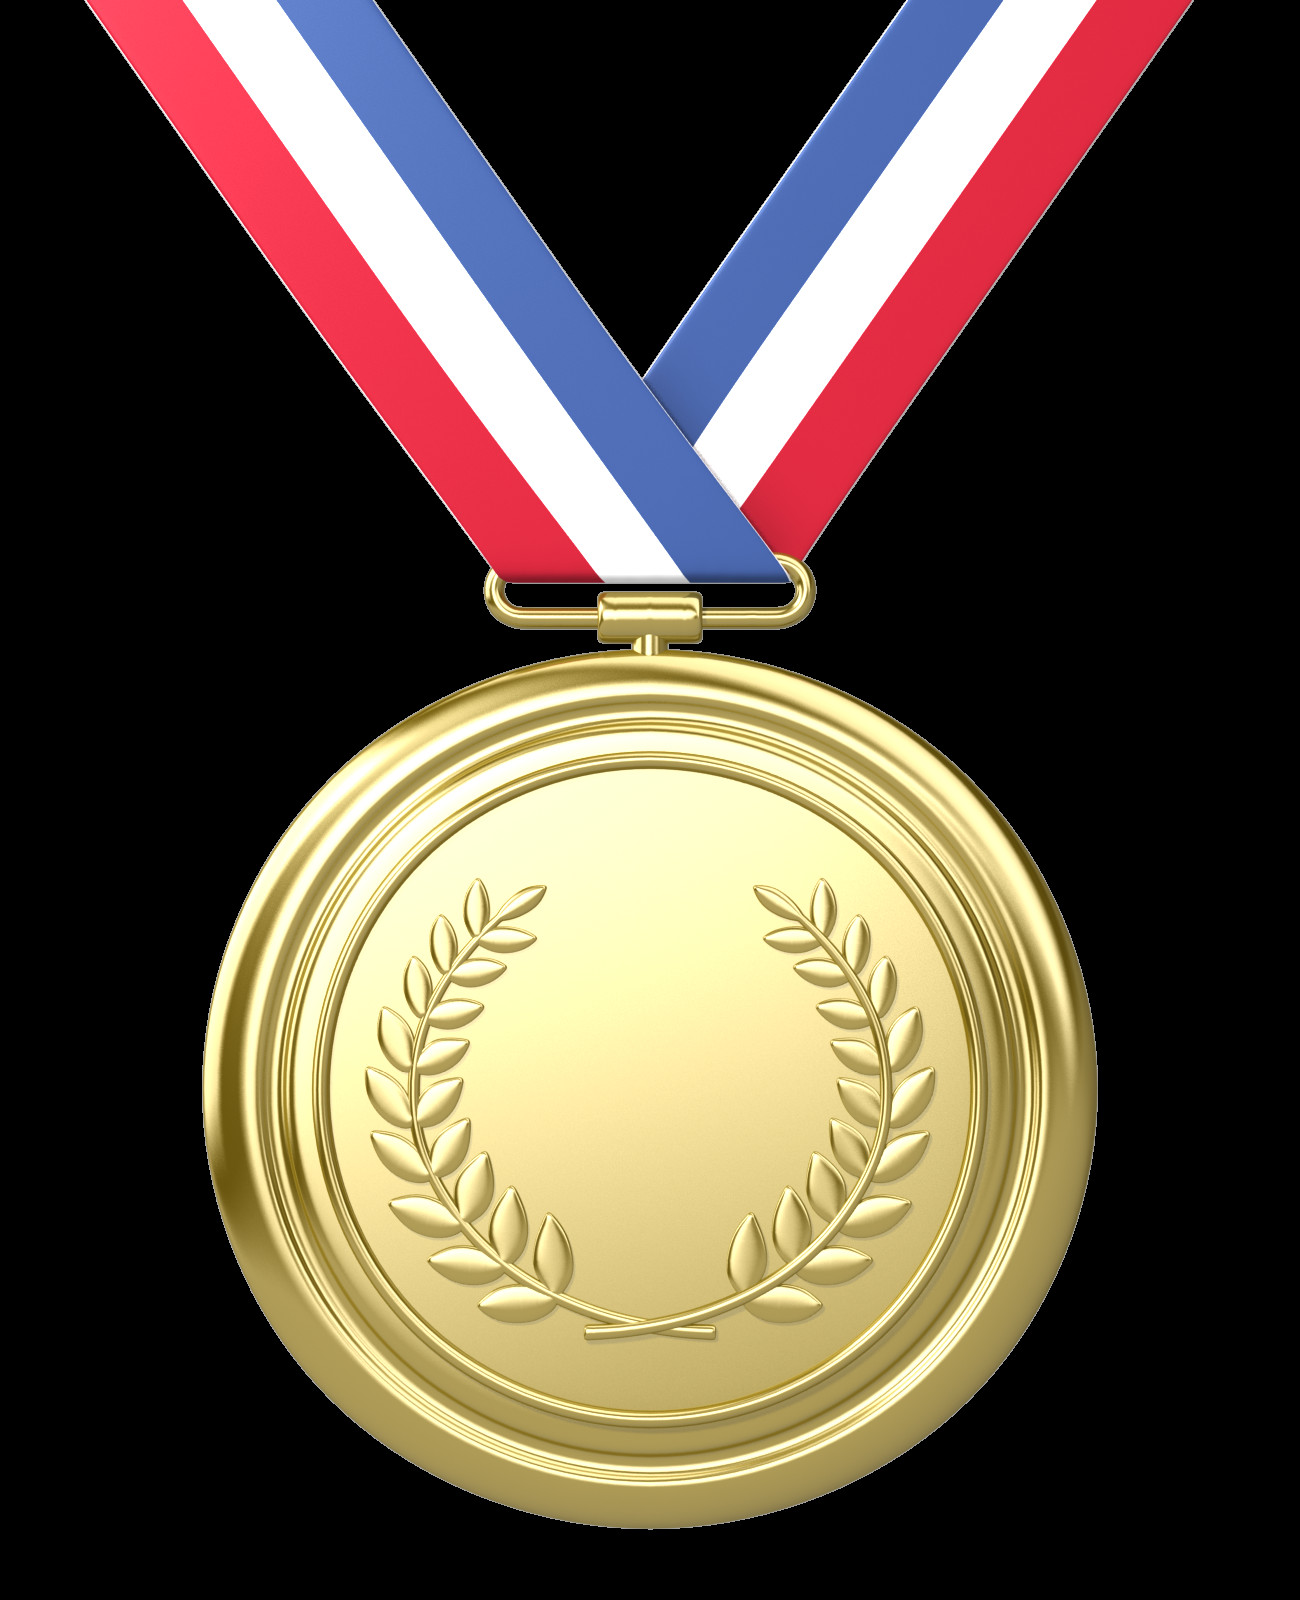 Gold Medal Printable 7 Personal Gold Medal Achievements Bee